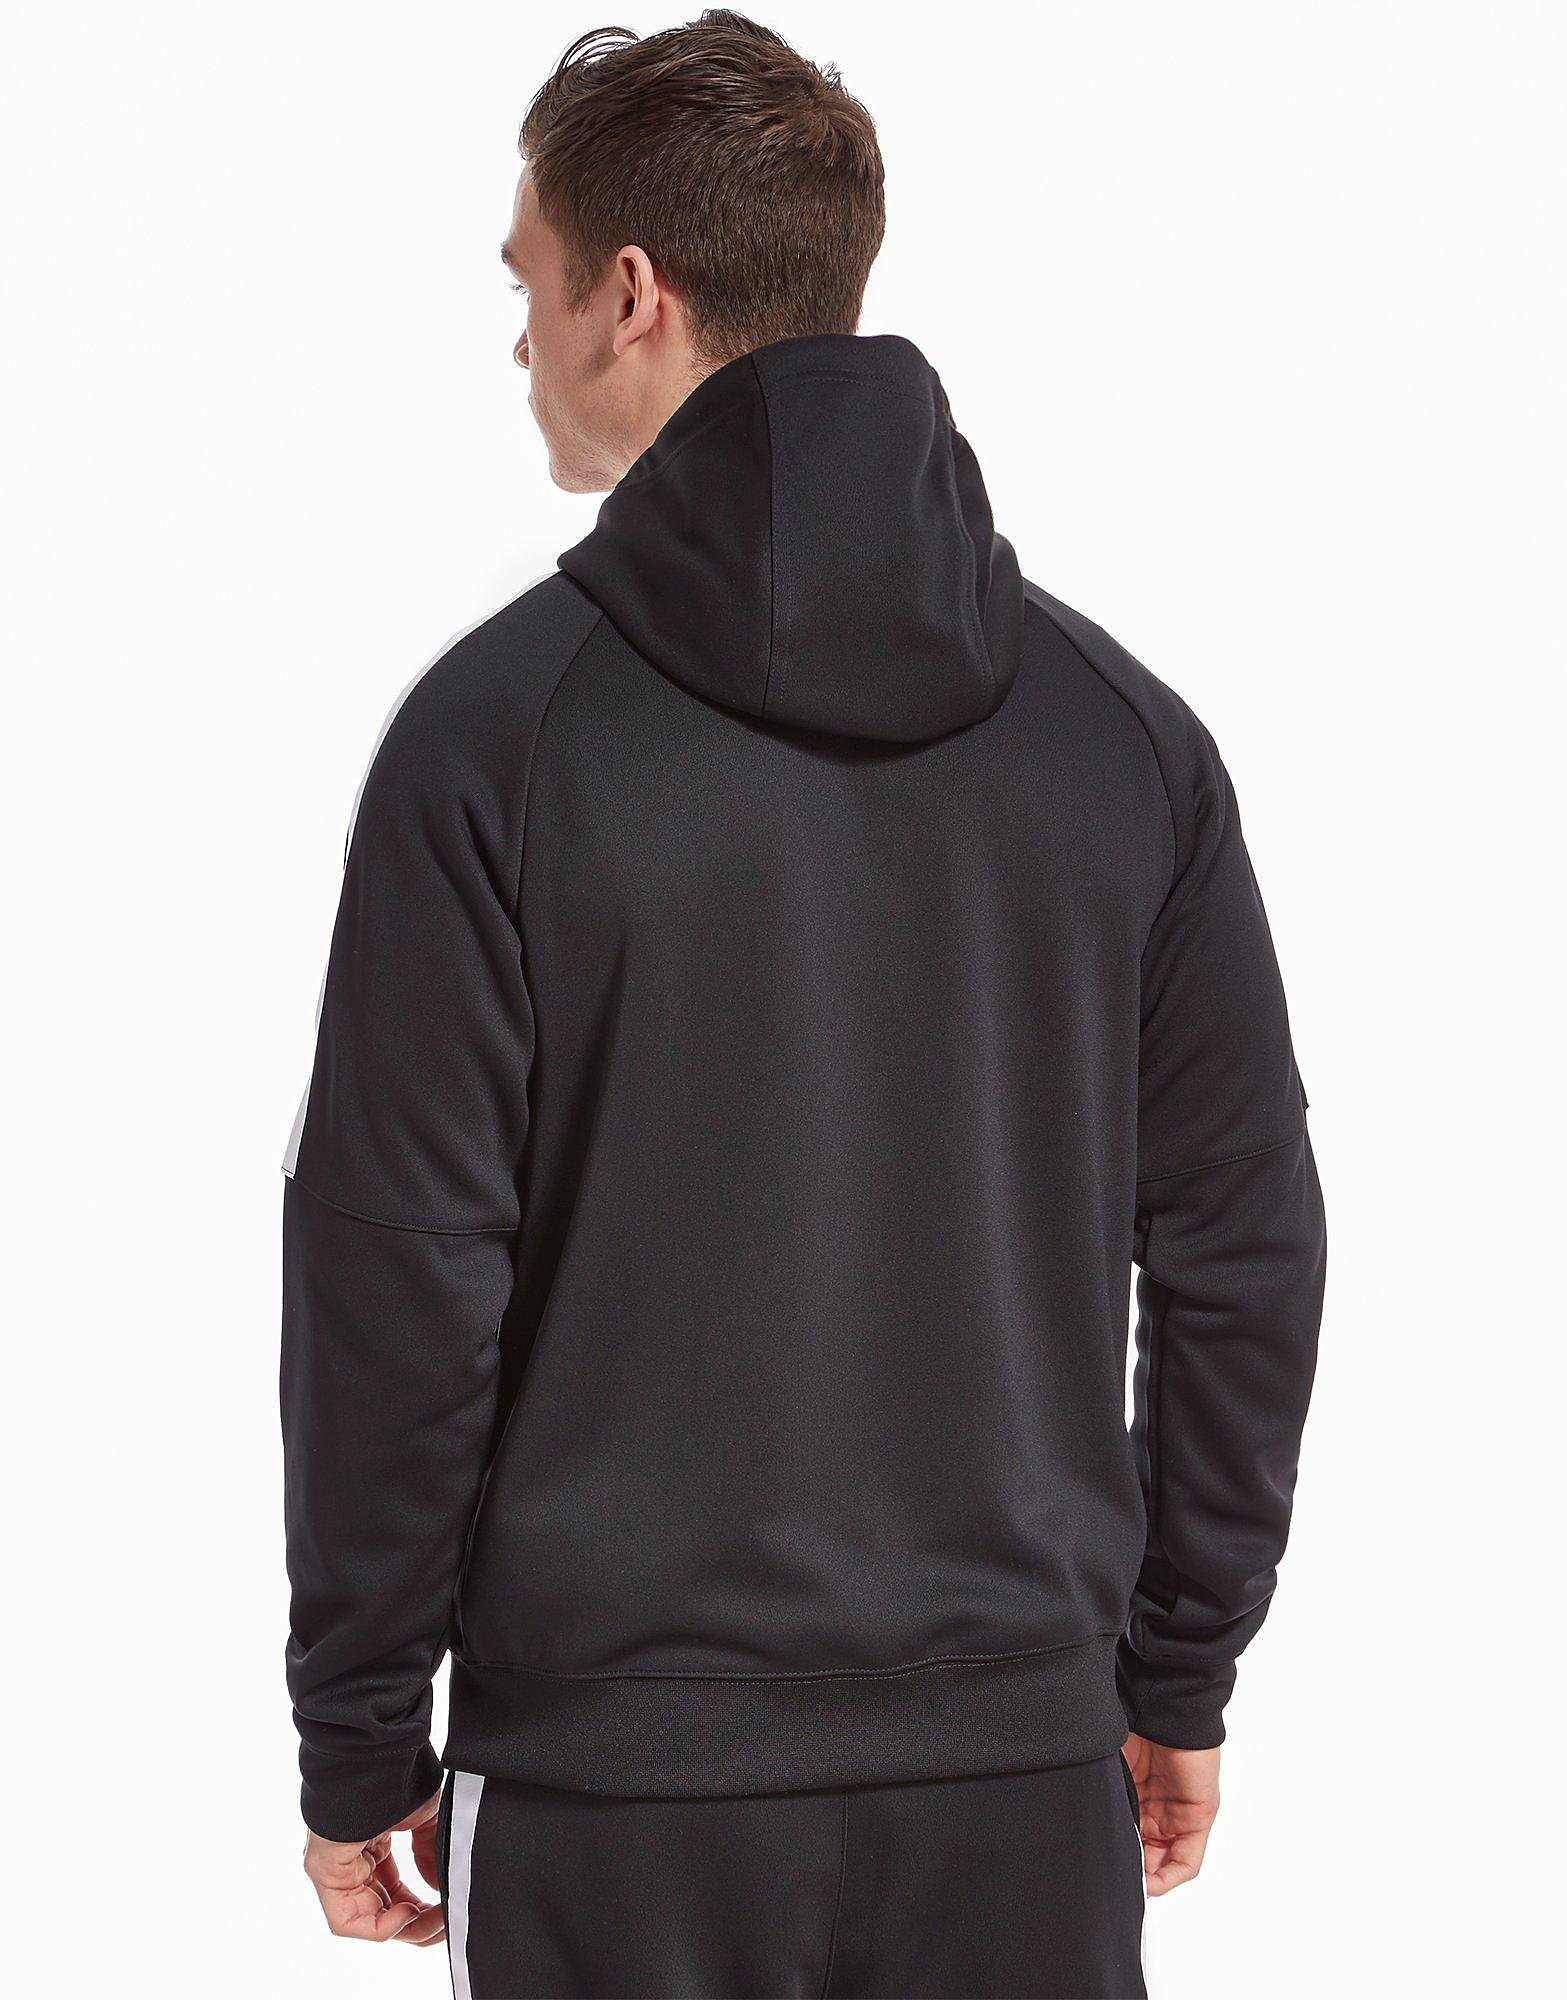 Nike Limitless Full Zip Poly Hoody